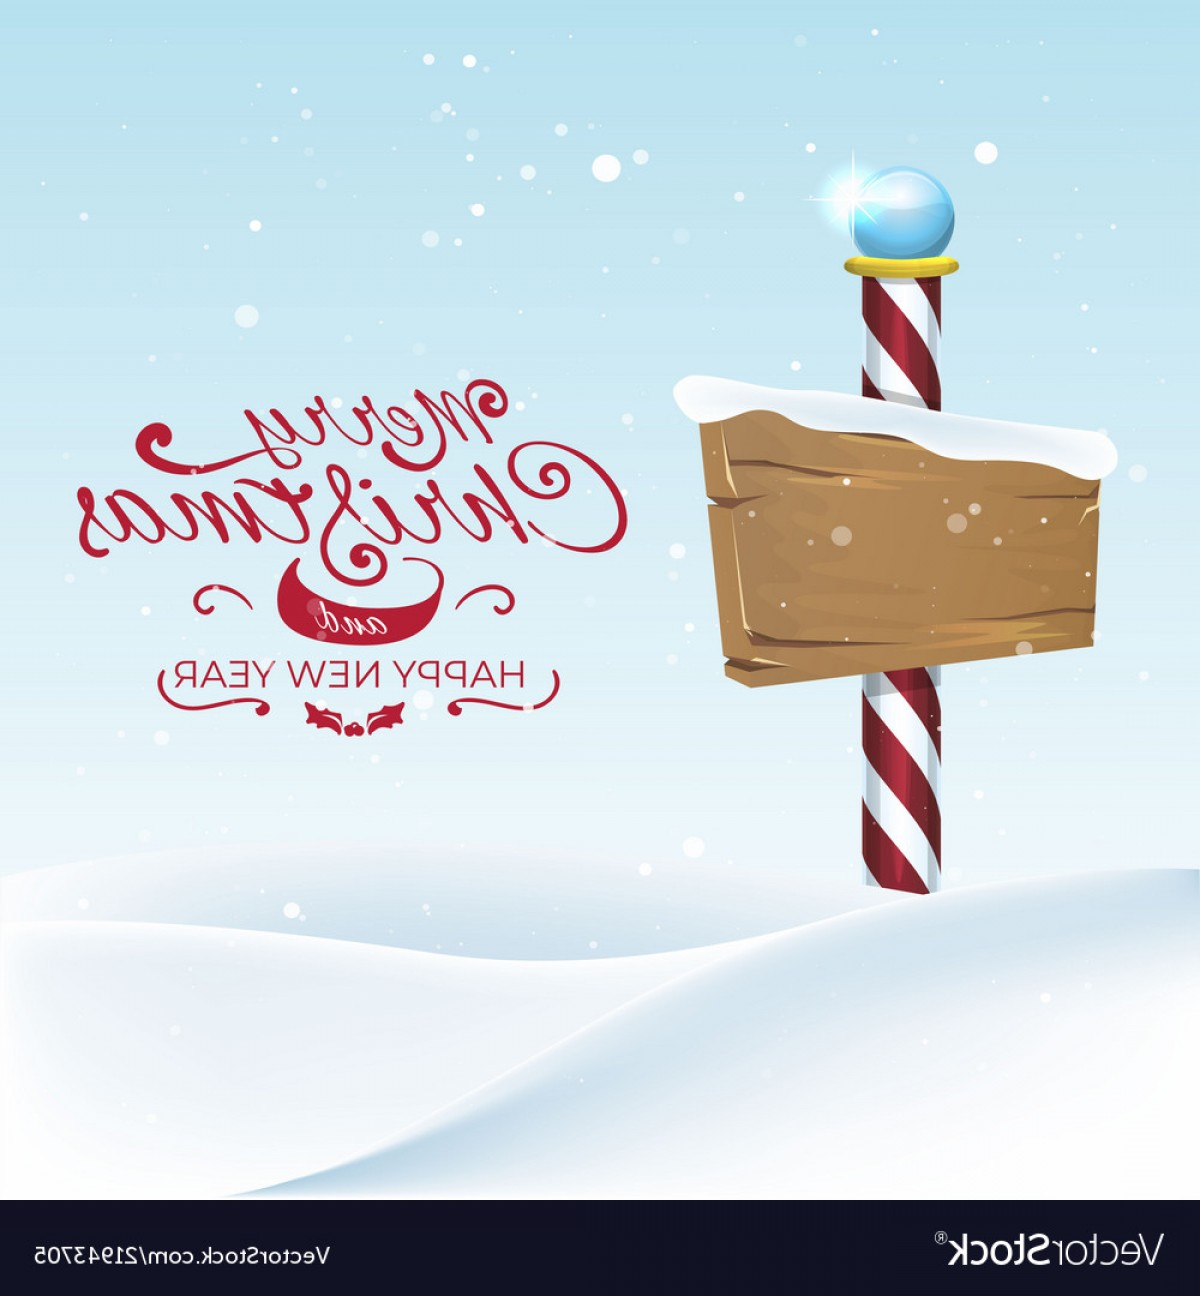 North Pole Landscape Vector: Christmas Landscape With North Pole Sing Vector